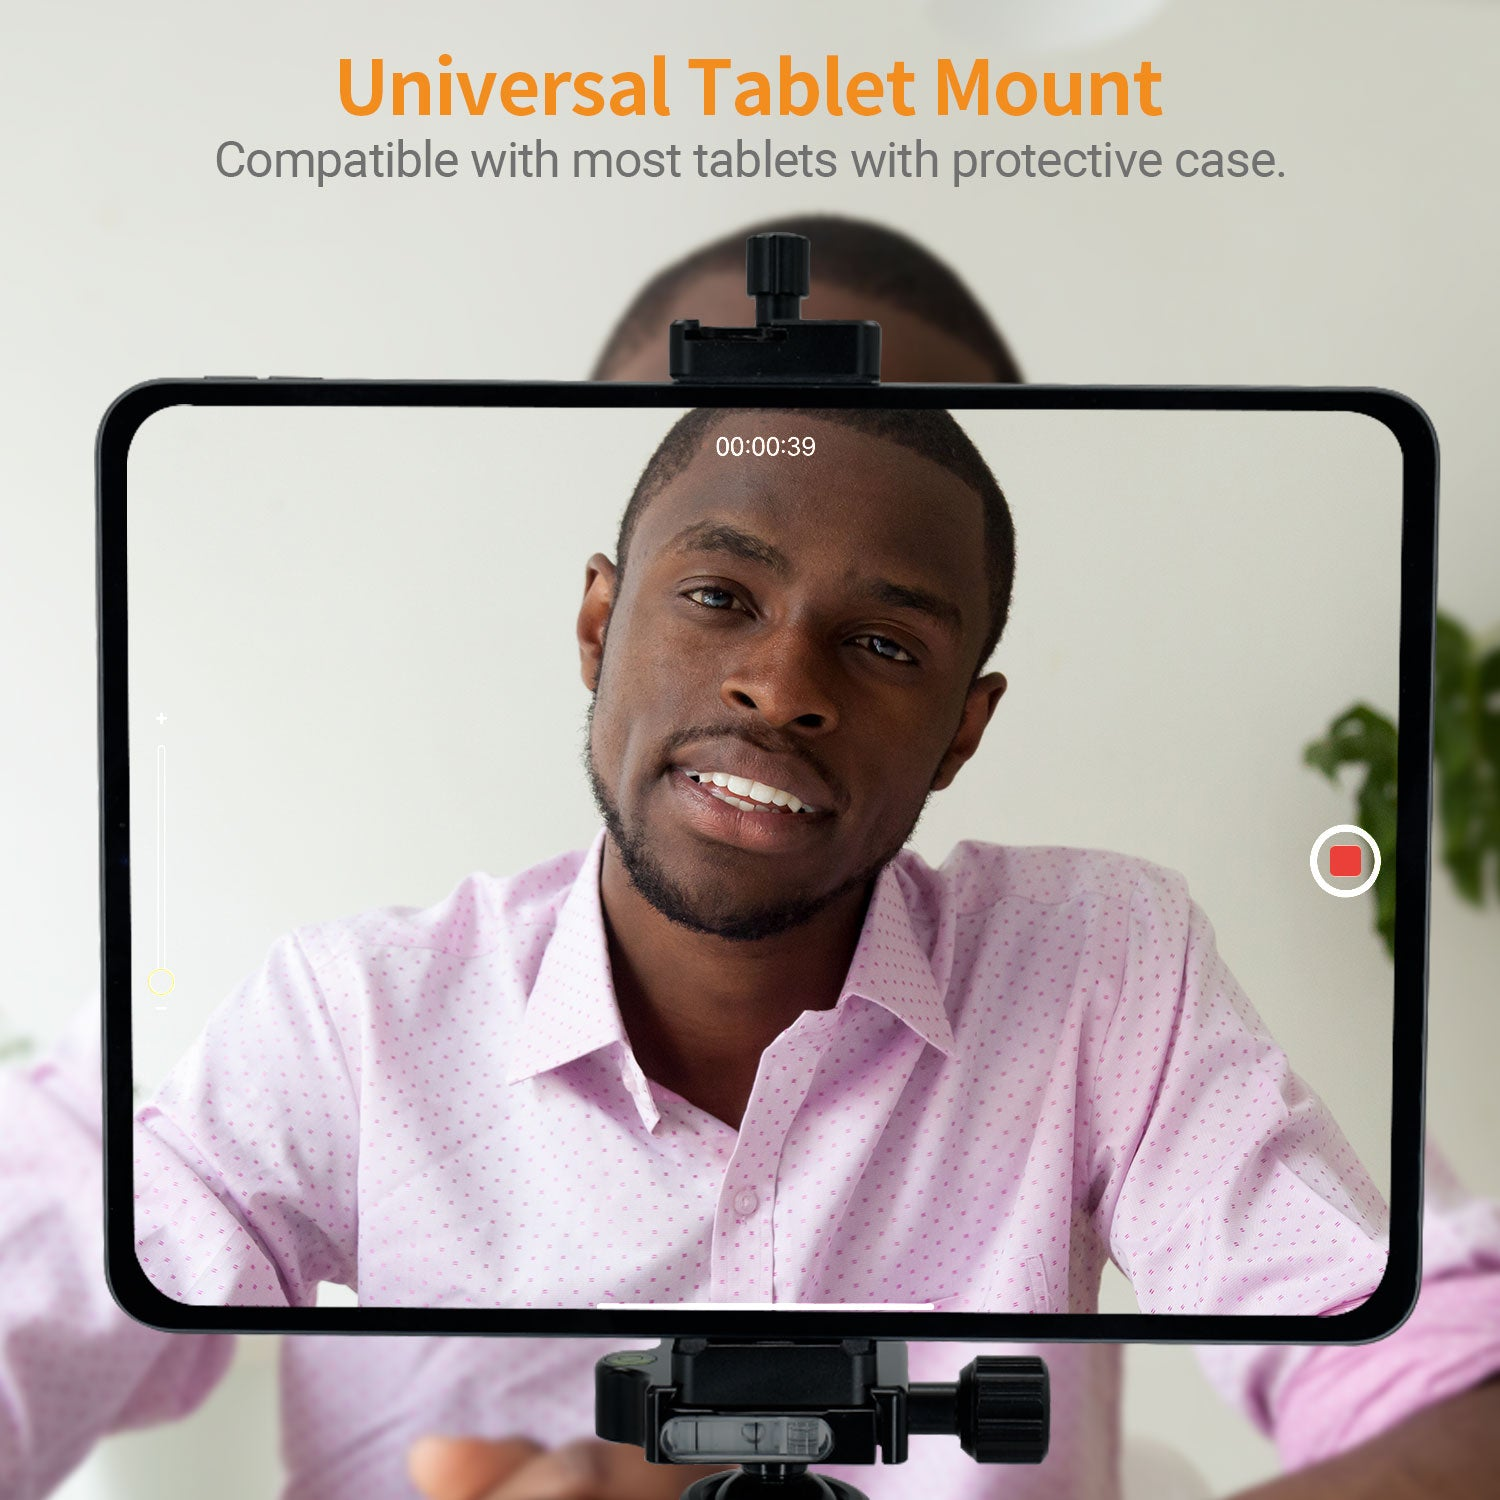 Universal Tablet Compatibility